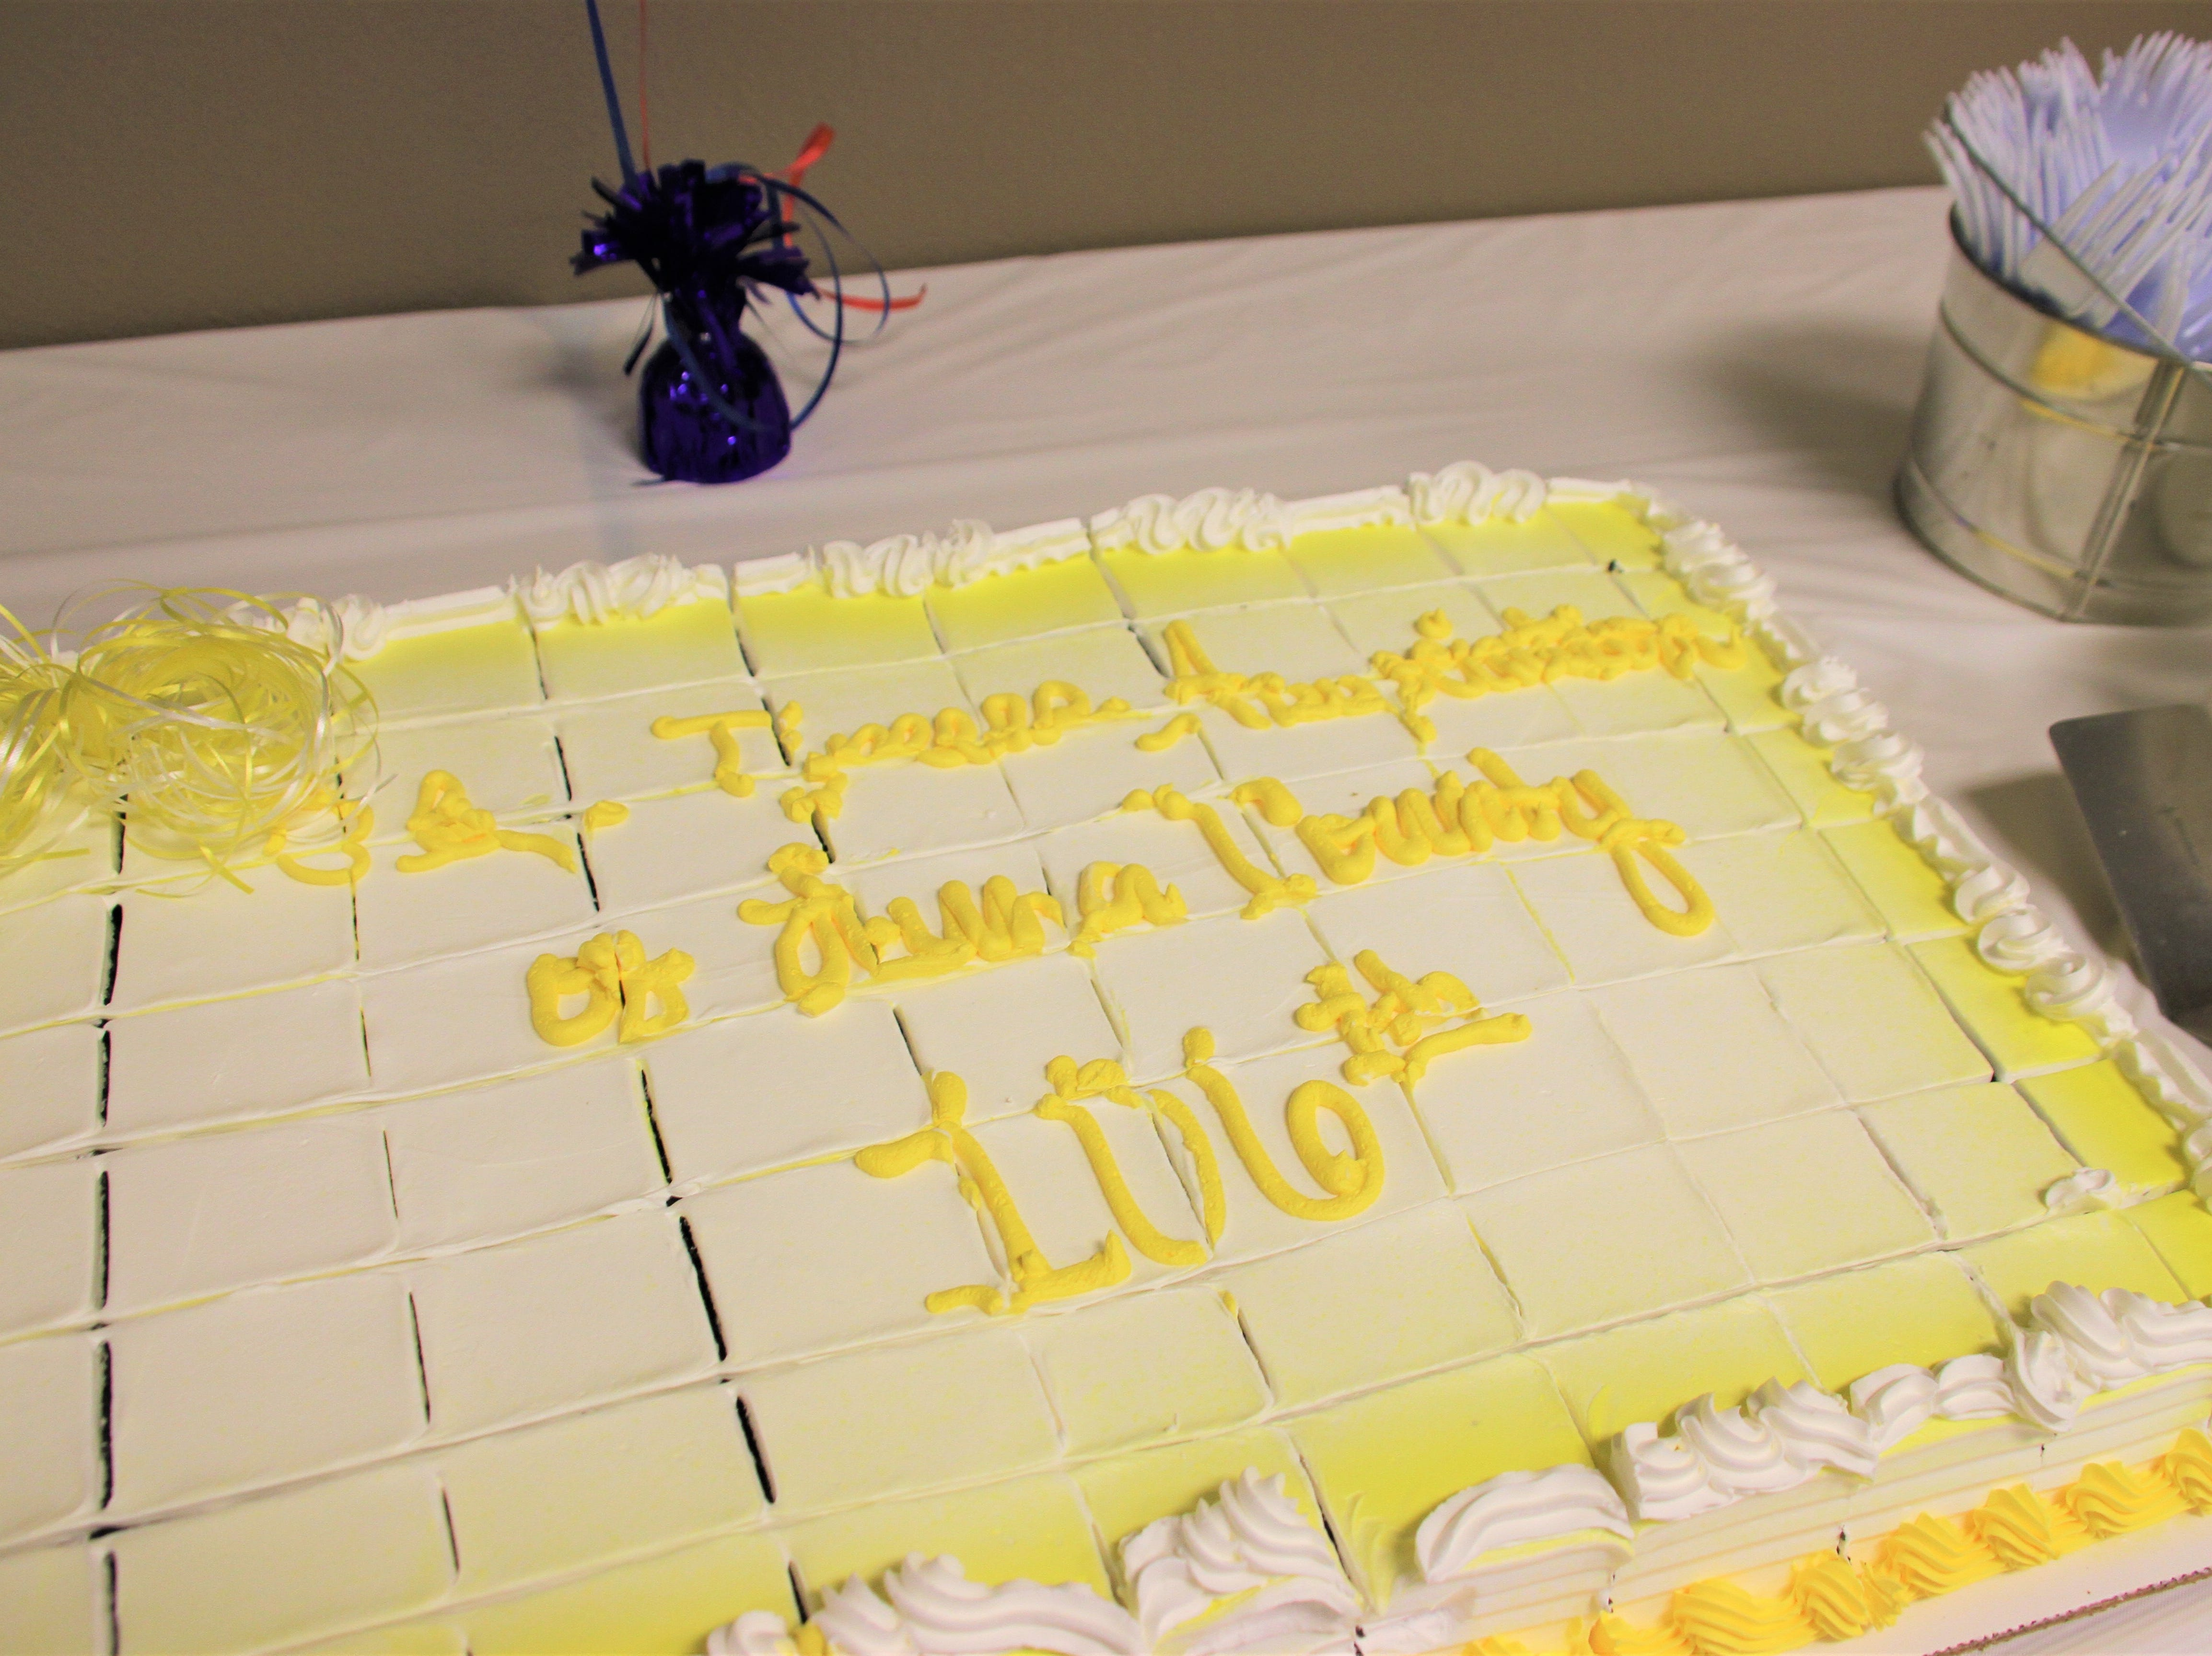 Old Timers Association annual banquet cake. It reads: Old Timers Association of Luna County 106th.